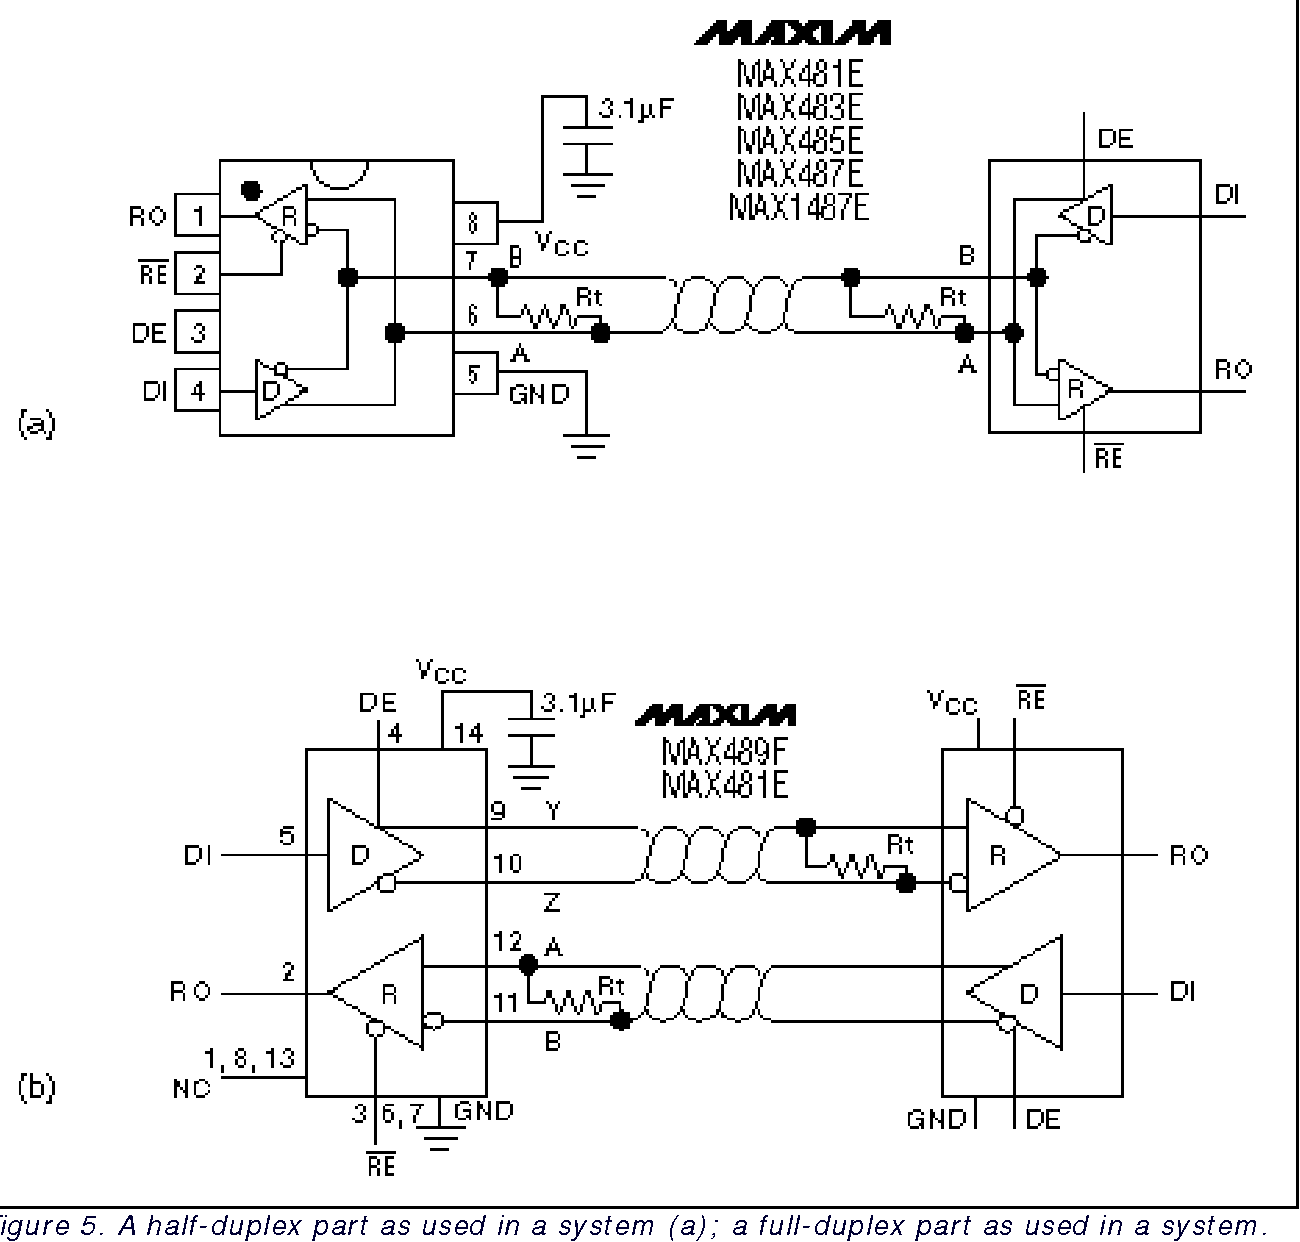 a half-duplex part as used in a system (a)